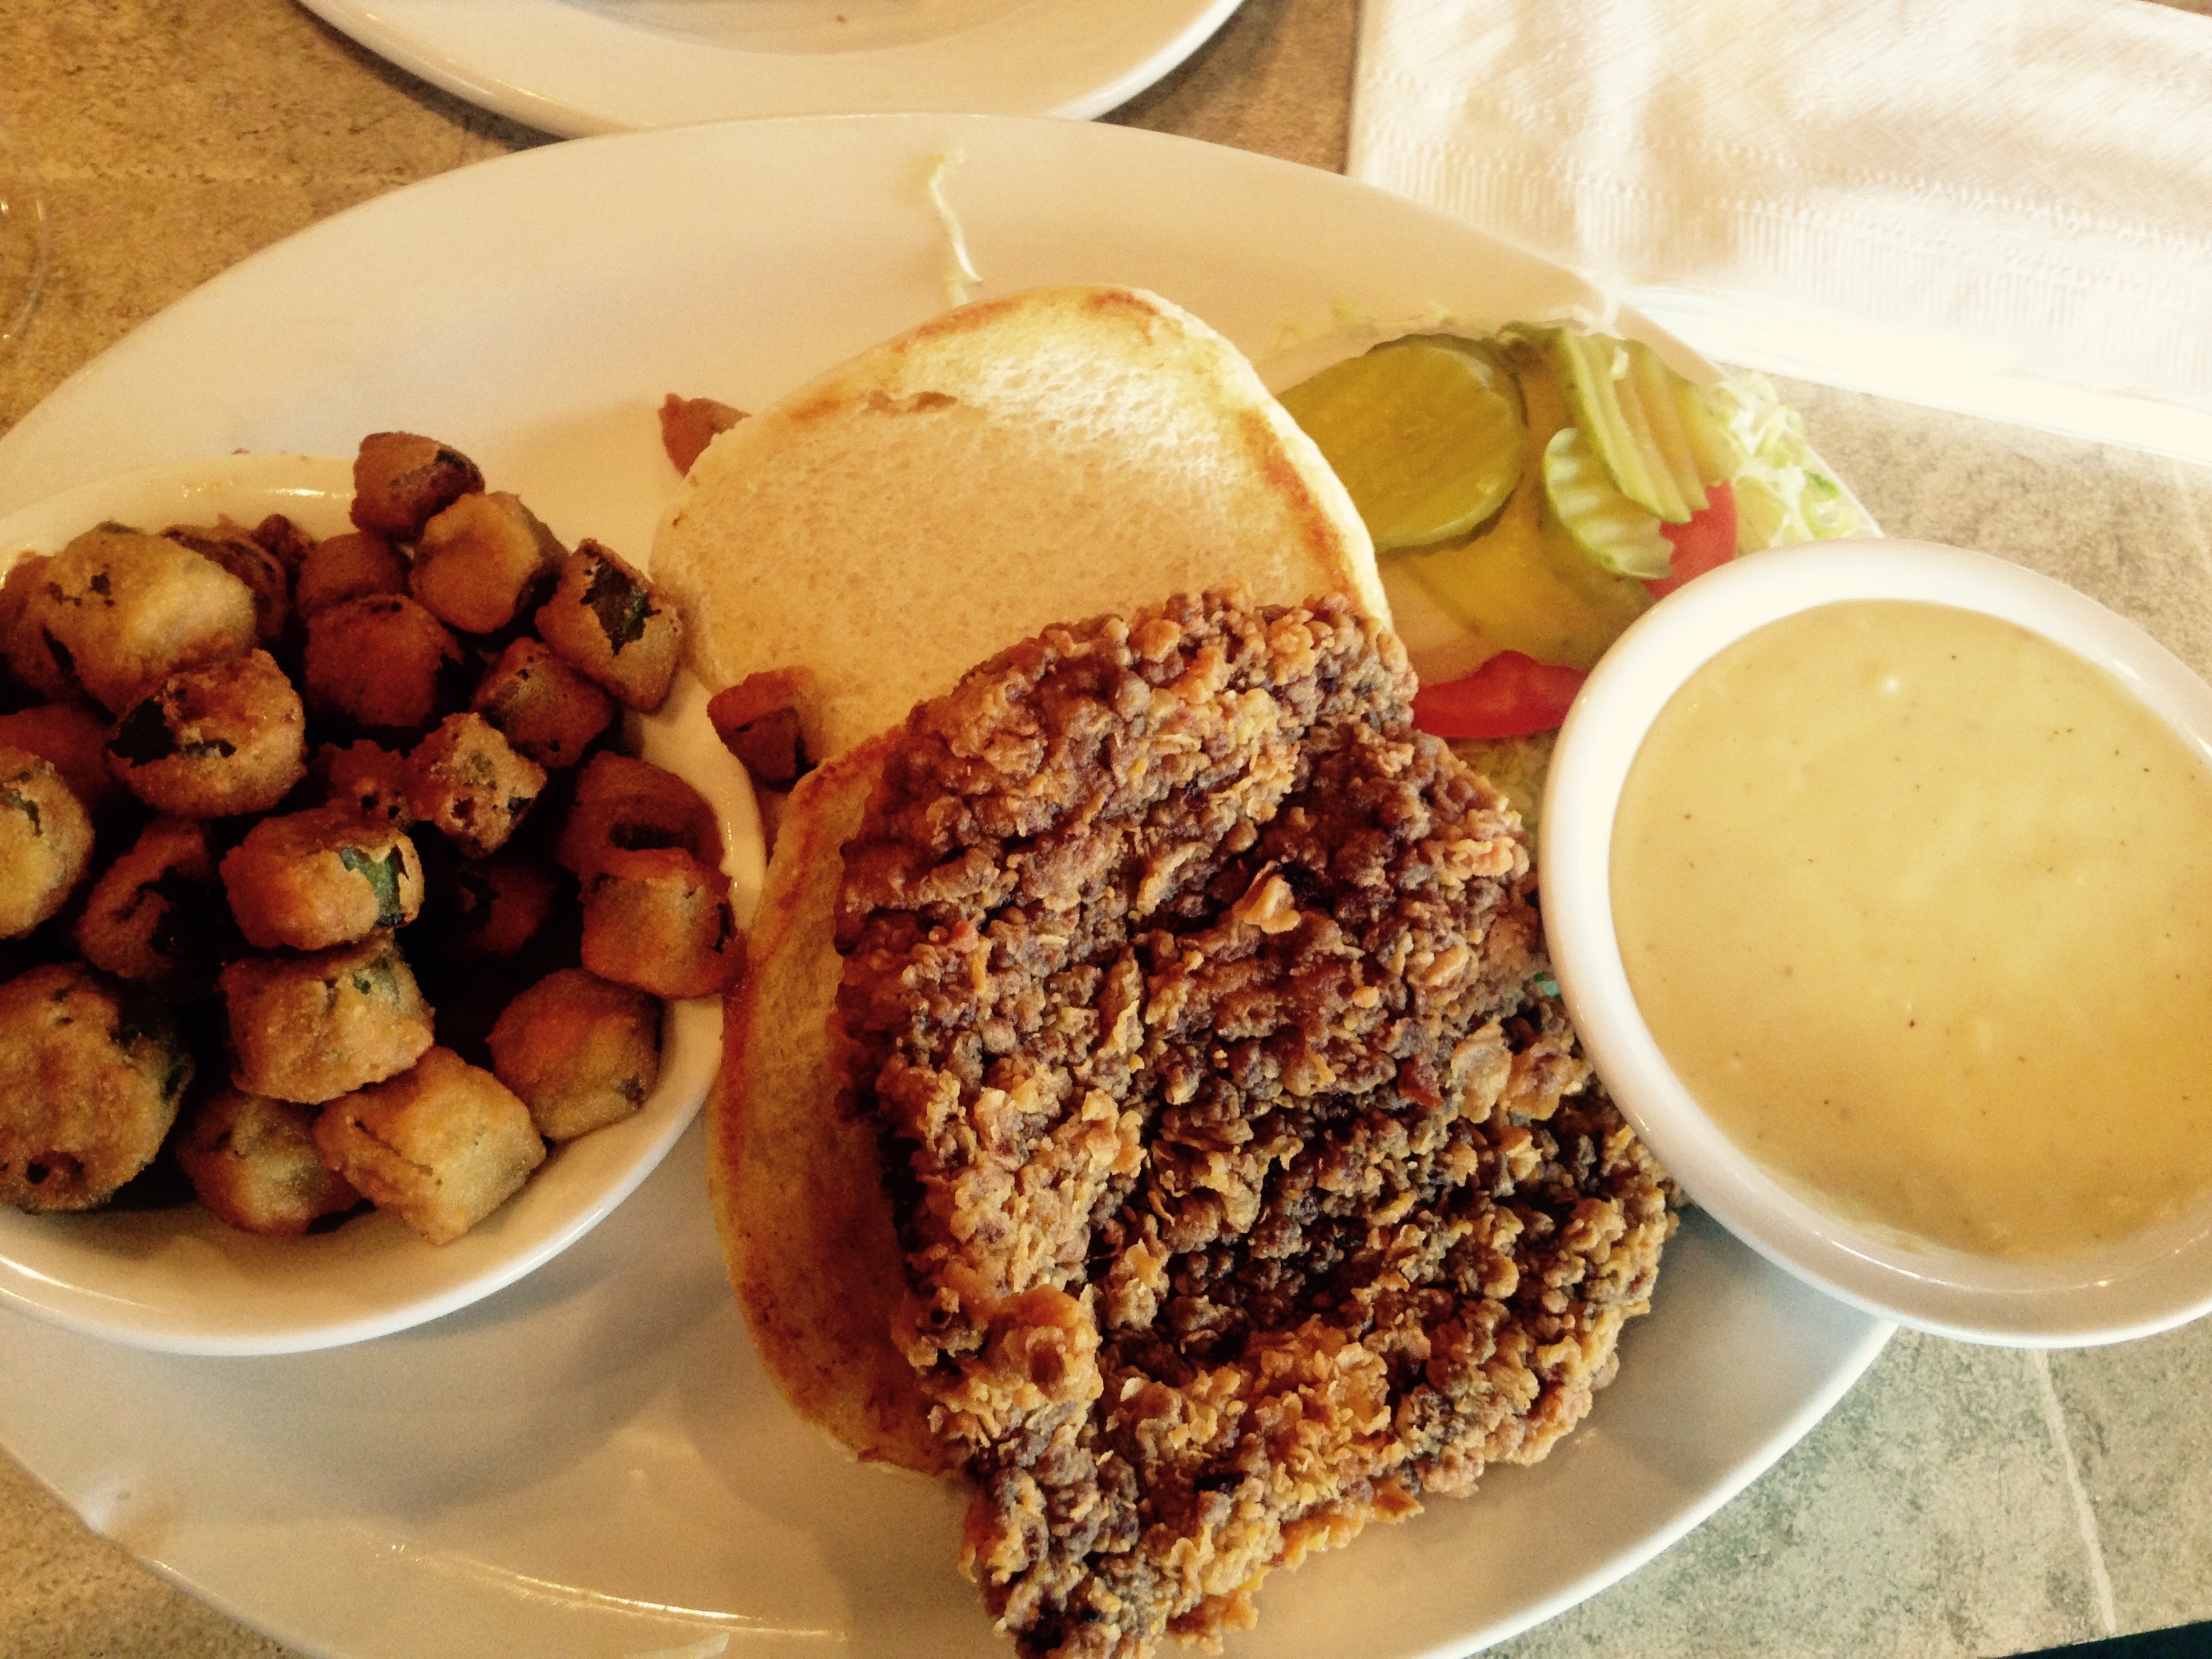 Chicken-fried steak and fried okra.